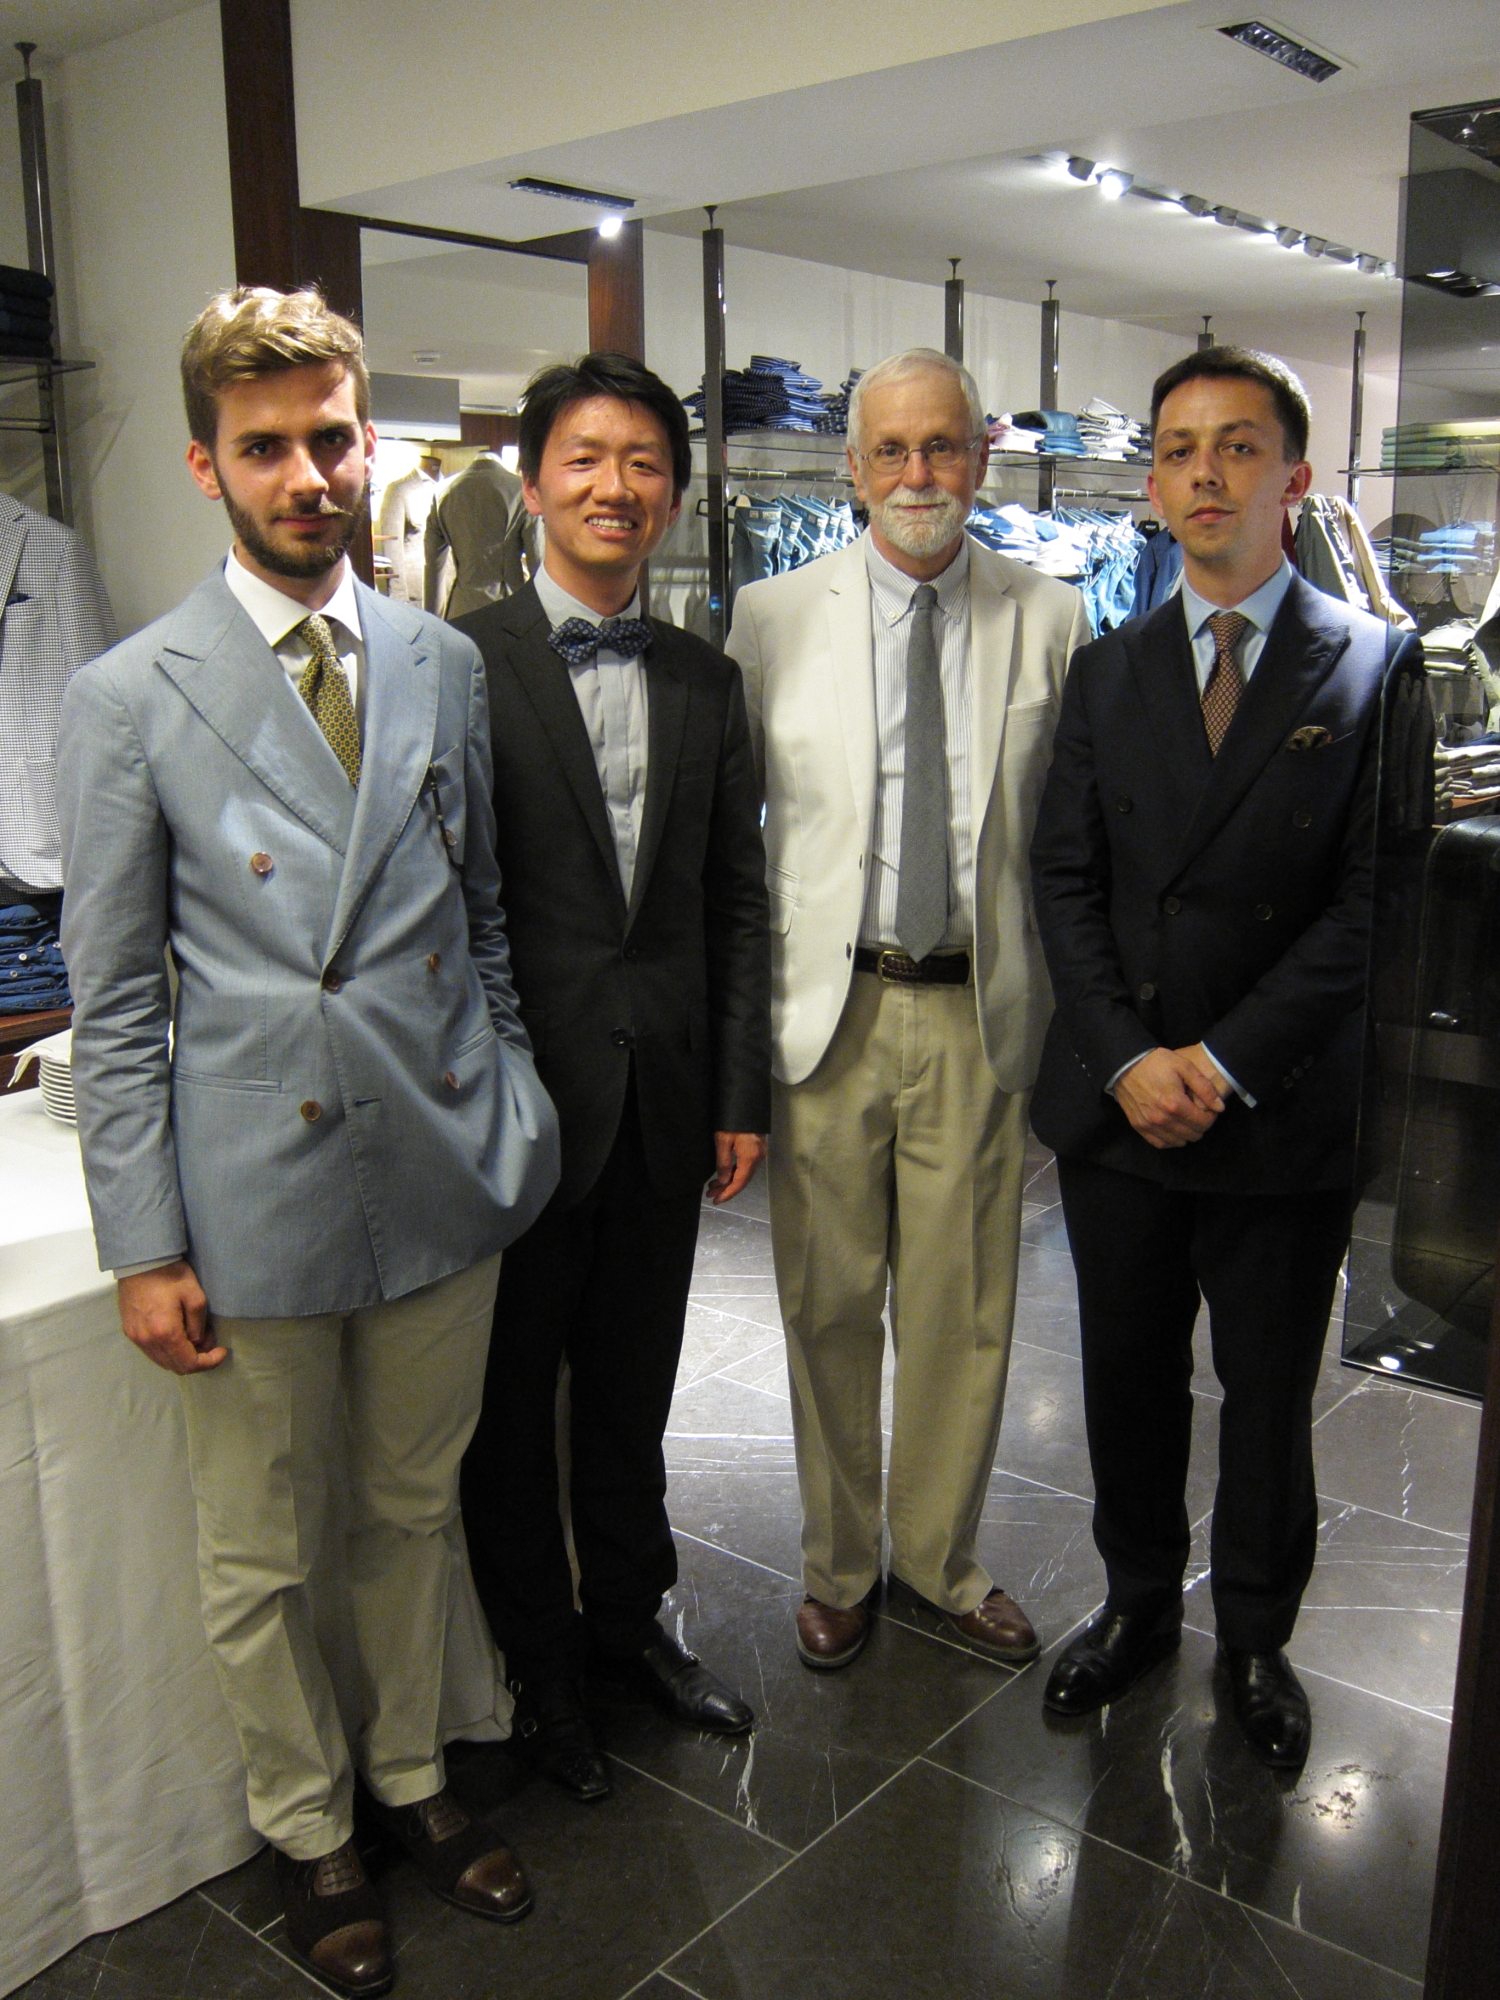 Zhizhong and Bob with our stylish new friends from Bordeaux, Adrian and Grégory.